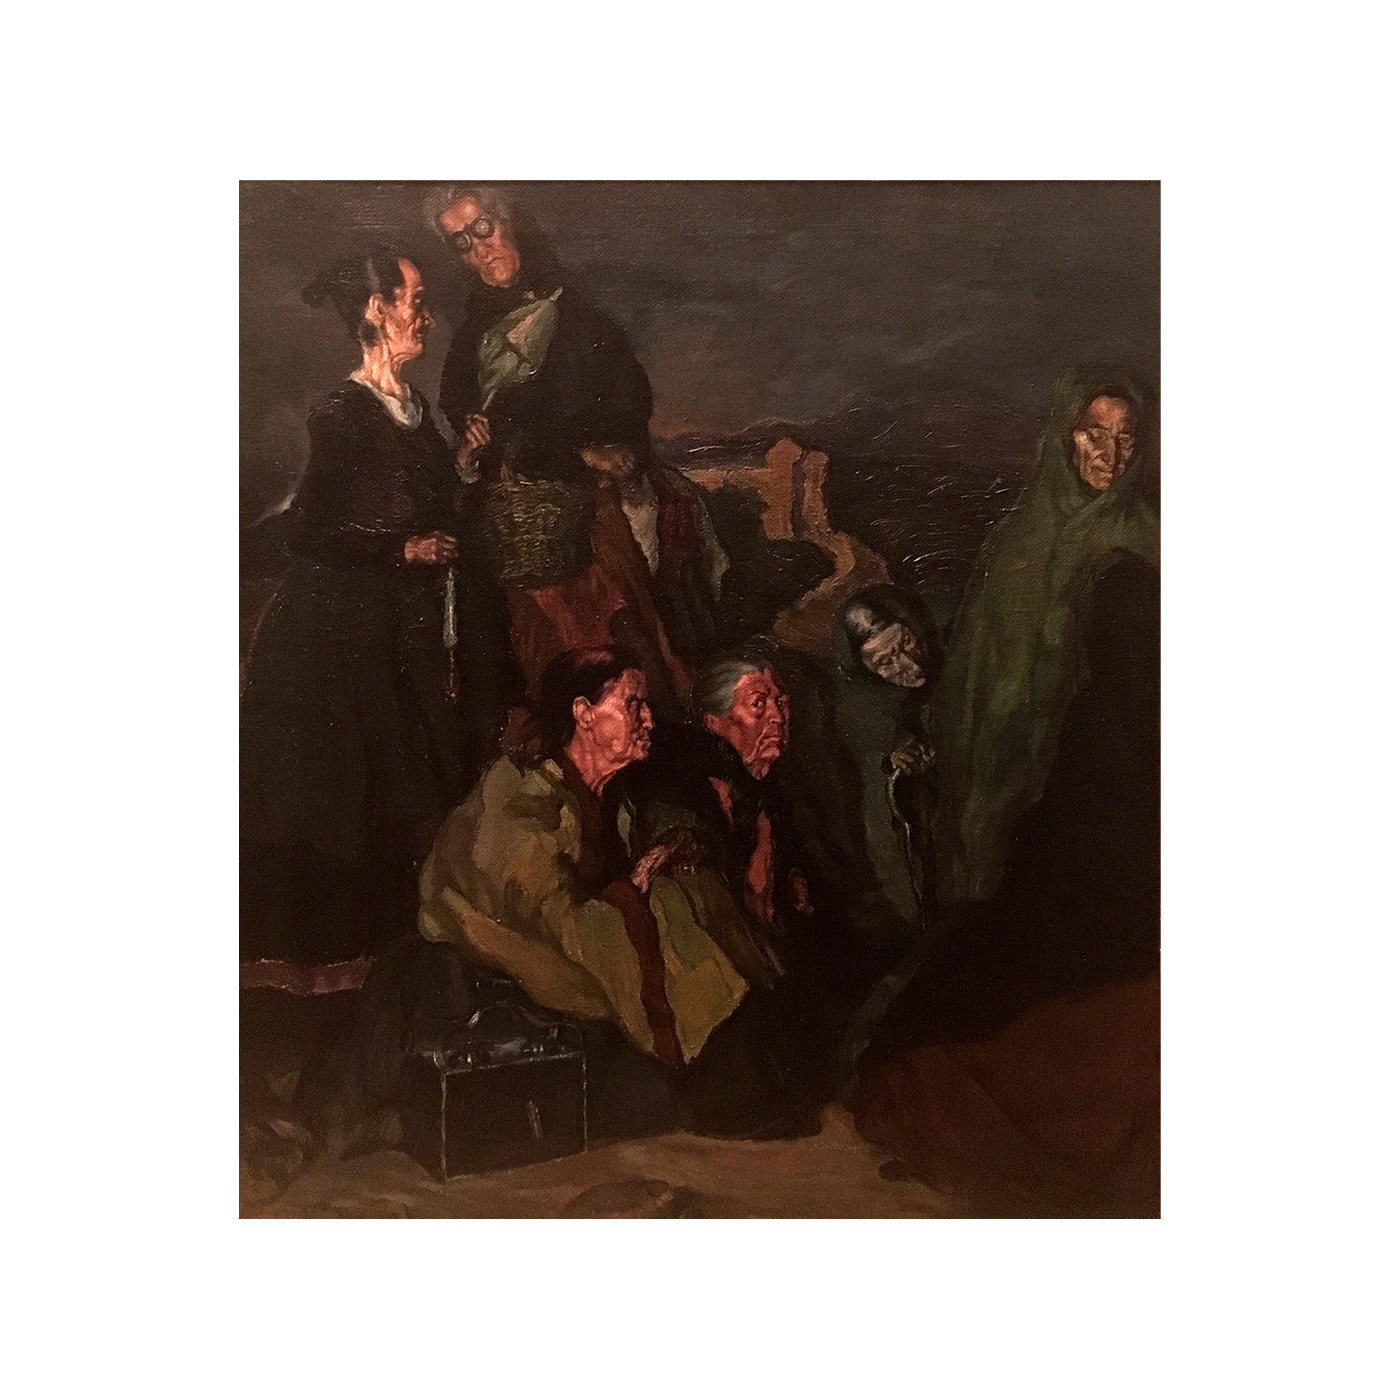 Ignacio Zuloaga y Zabaleta [1870-1945] Spanish : La brujas de San Millan [The witches of San Millan], 1895.